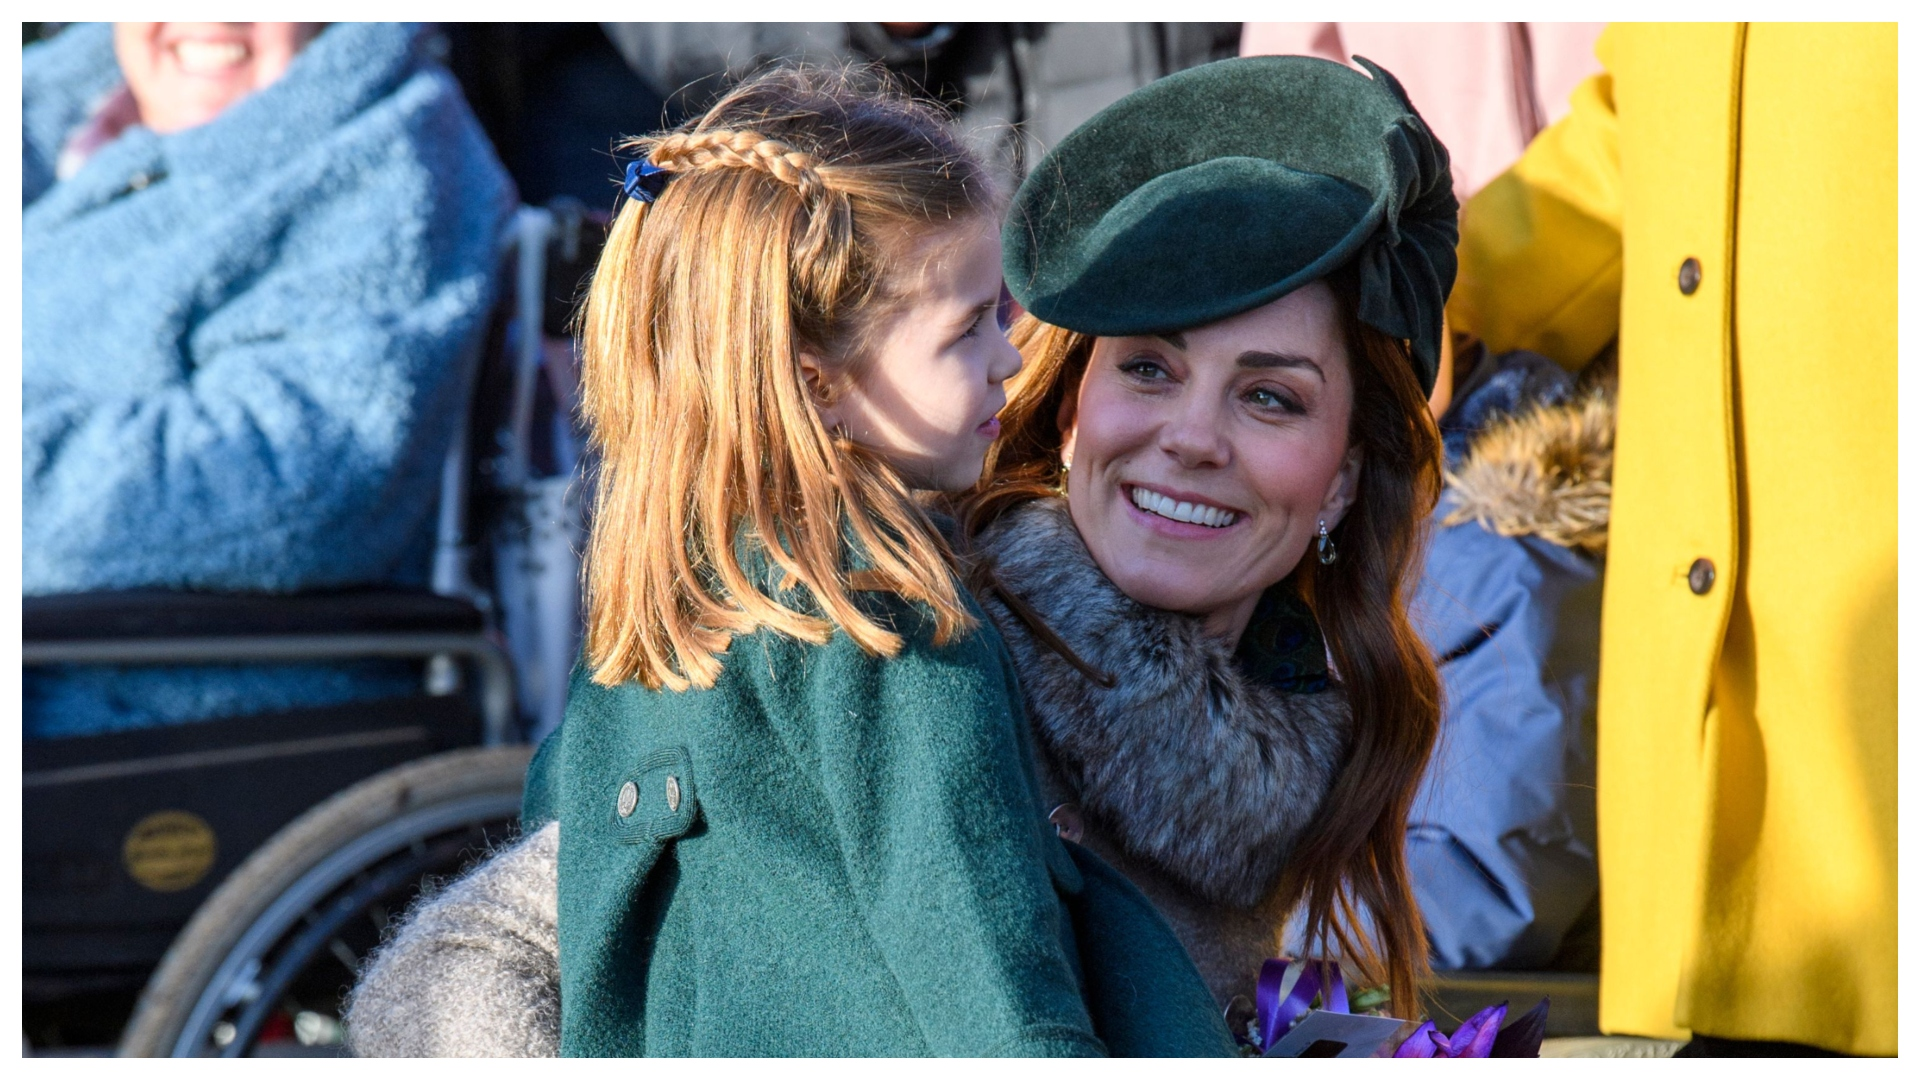 Kate Middleton Shares Never Before Seen Photo of Princess Charlotte: 'It Means So Much to Me'